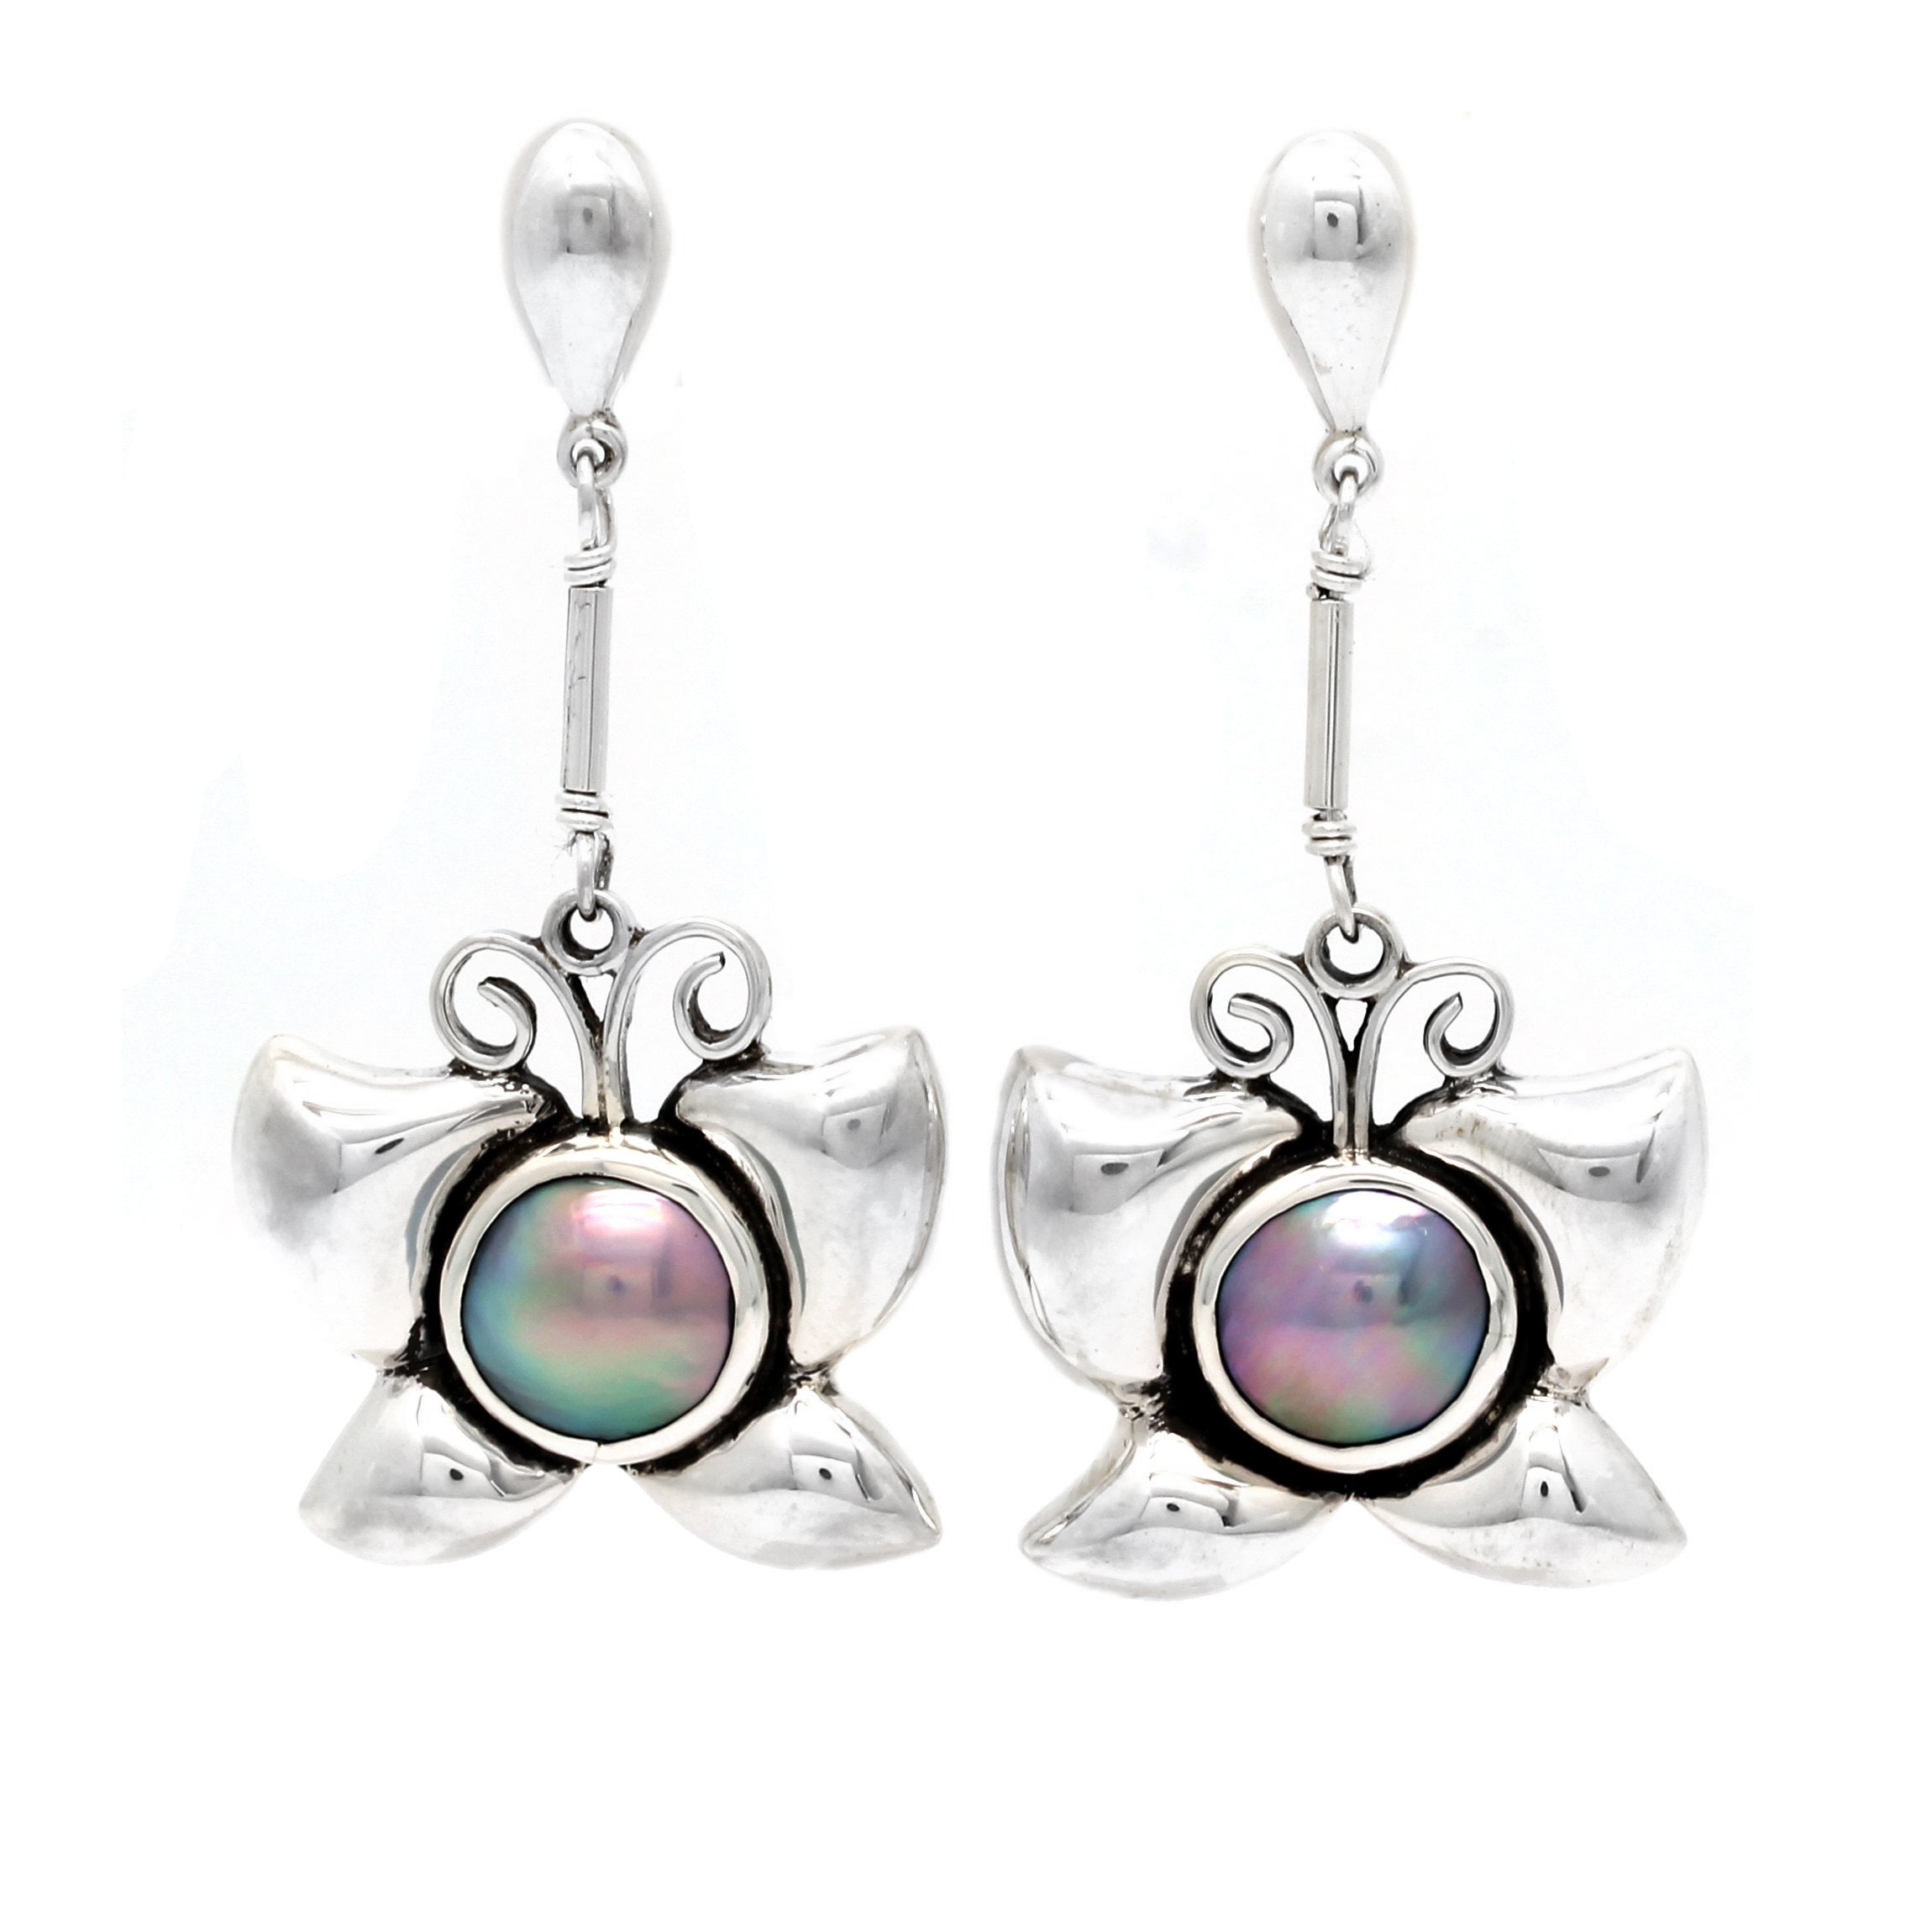 """Butterfly"" Silver Earrings with Cortez Mabe Pearls by Priscila Canales"